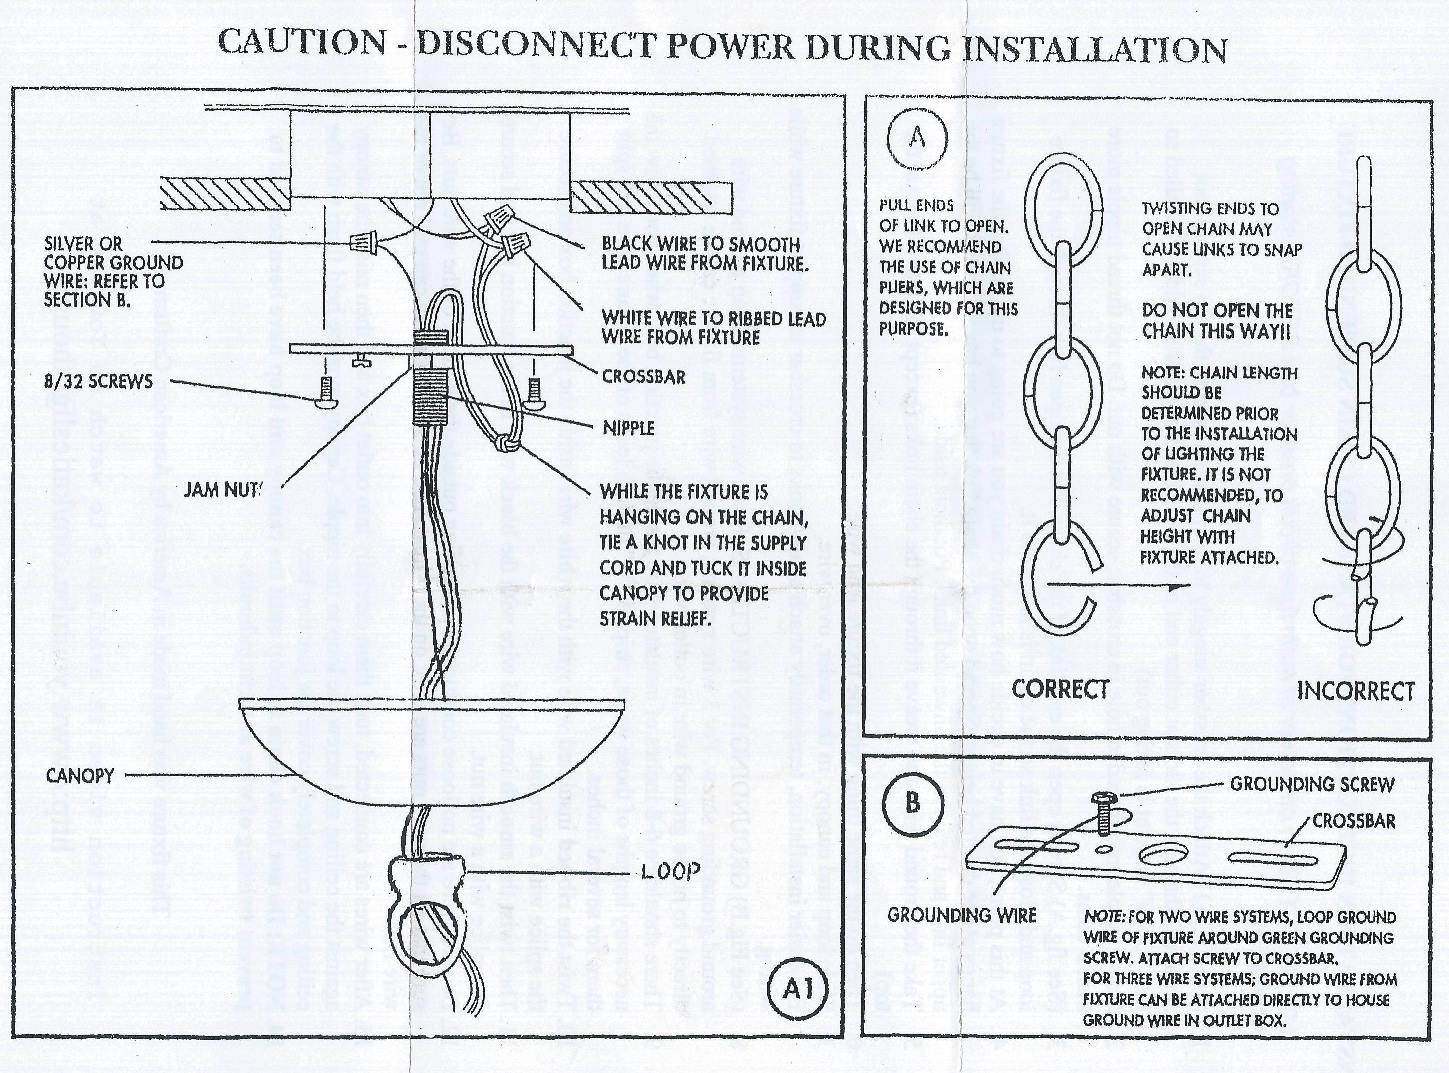 chandelier step by step installation guide rh countrylivingprimitives com Wiring- Diagram Wiring- Diagram